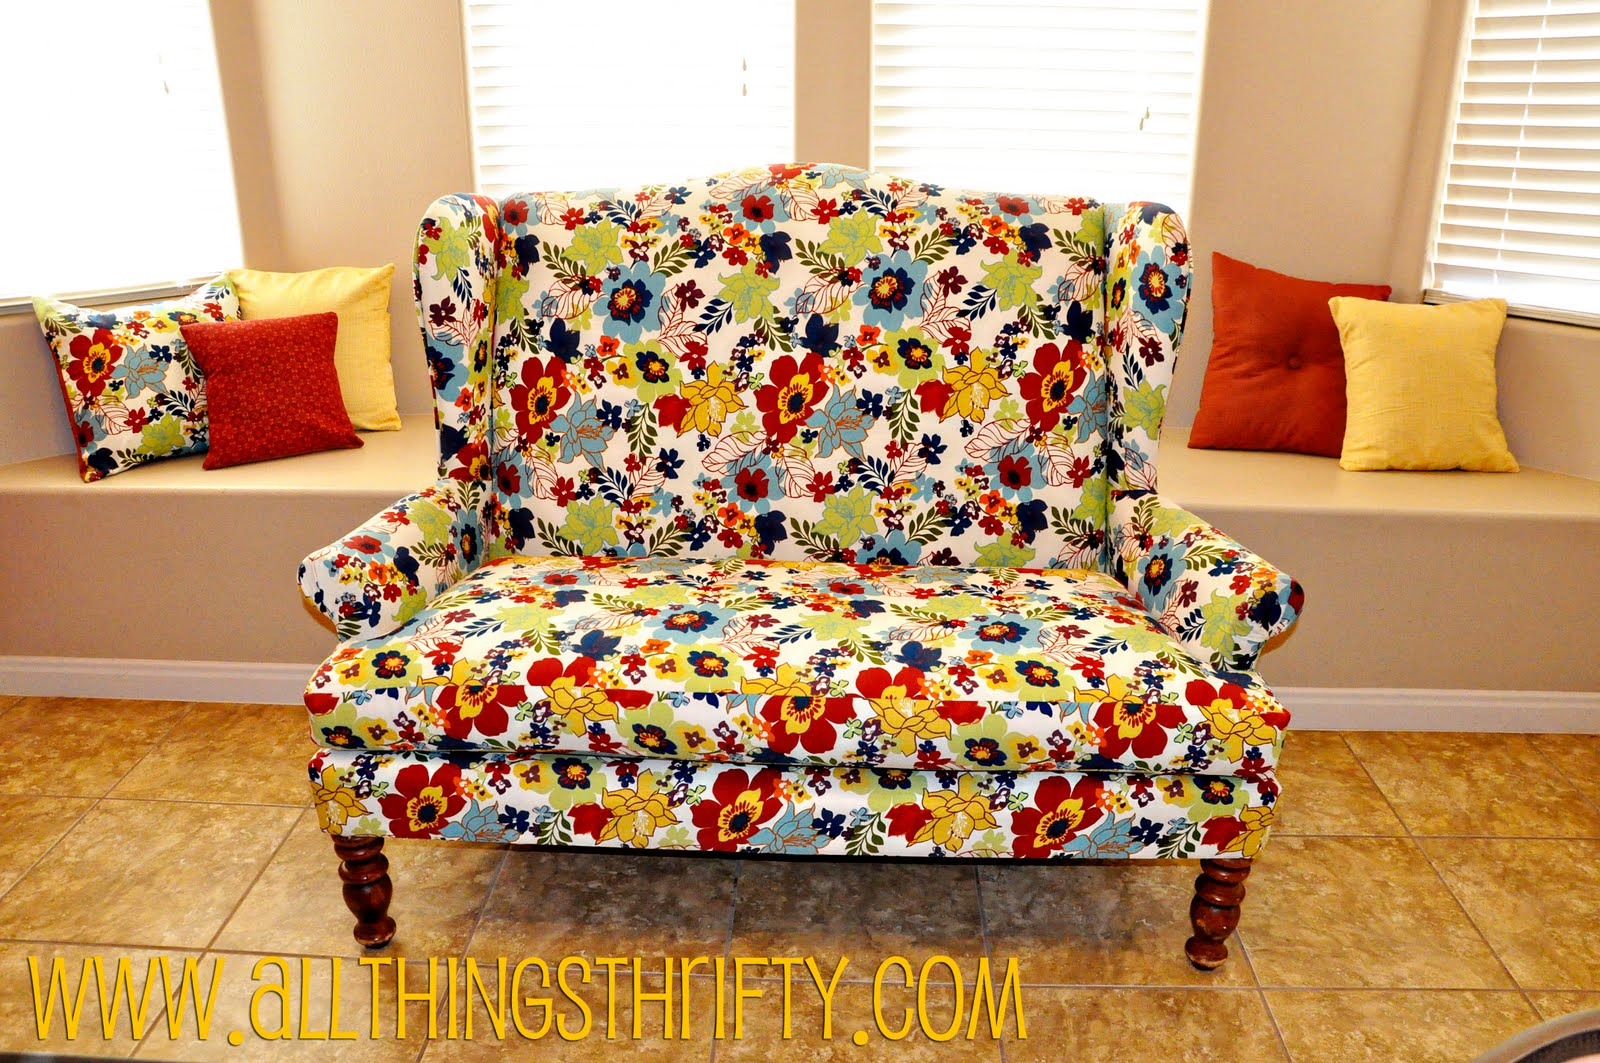 Swell Mary Jane Confetti Fabric At Joanns All Things Thrifty Short Links Chair Design For Home Short Linksinfo